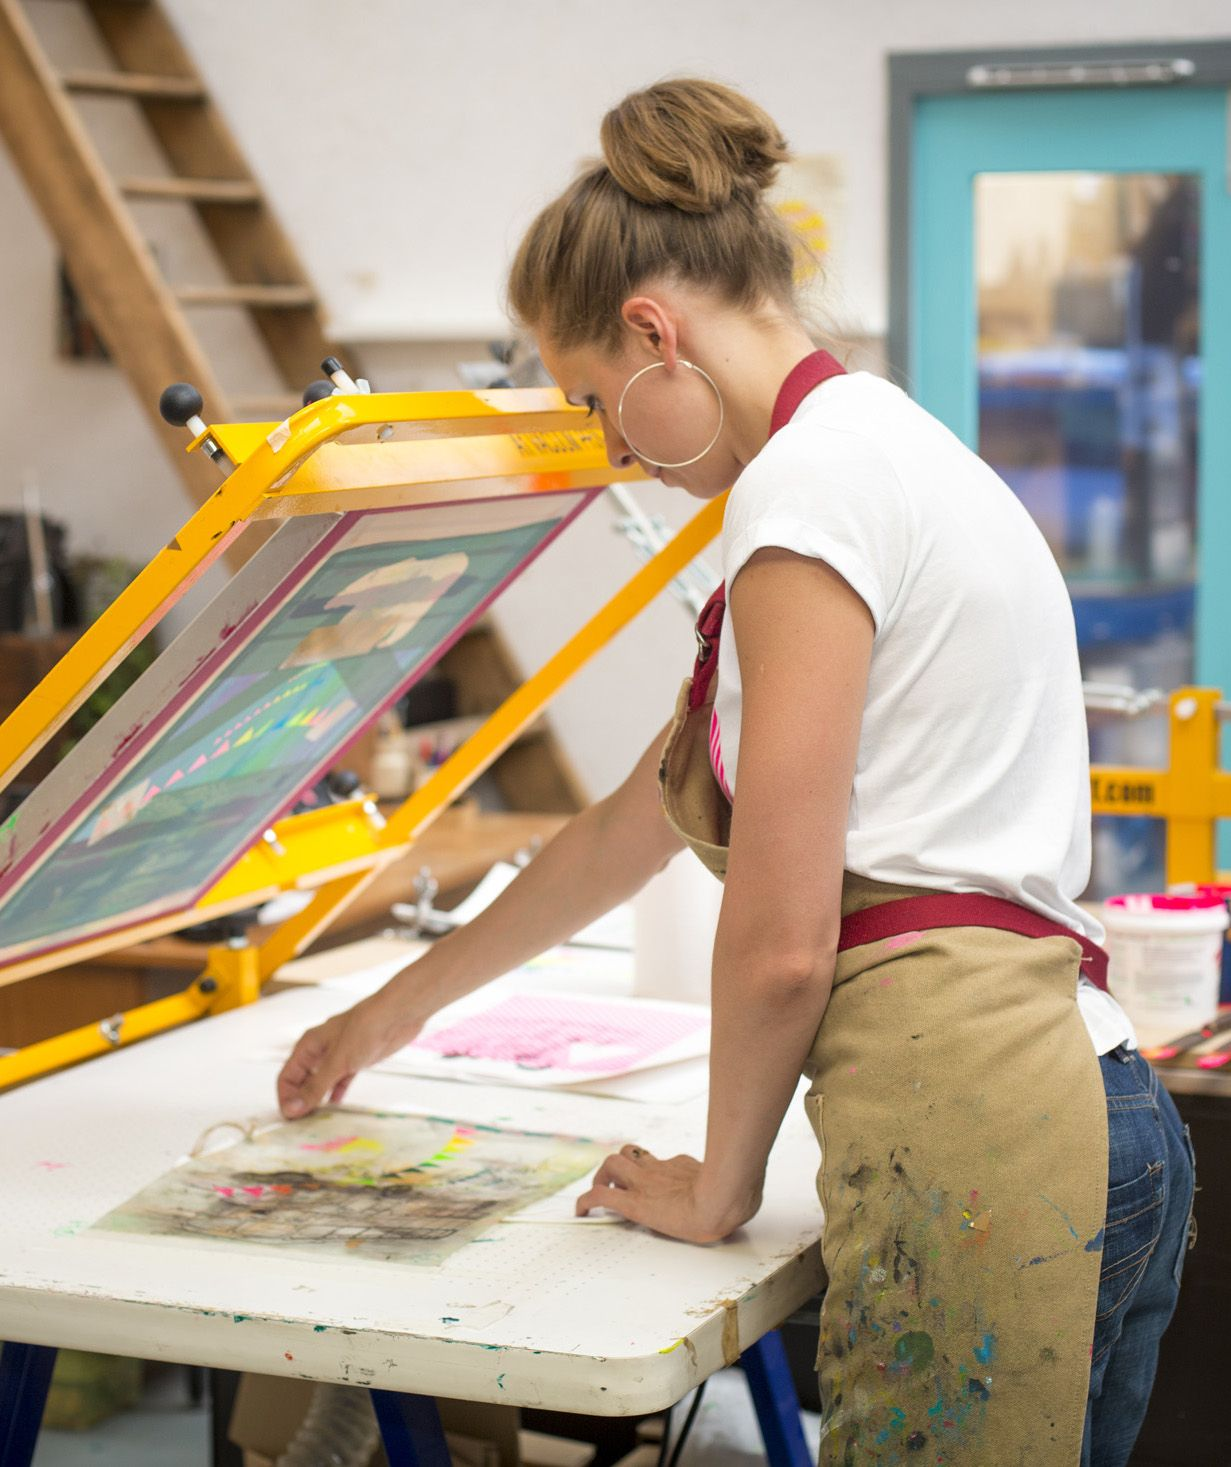 Rolfe&Wills is a Bristol based design and screen printing